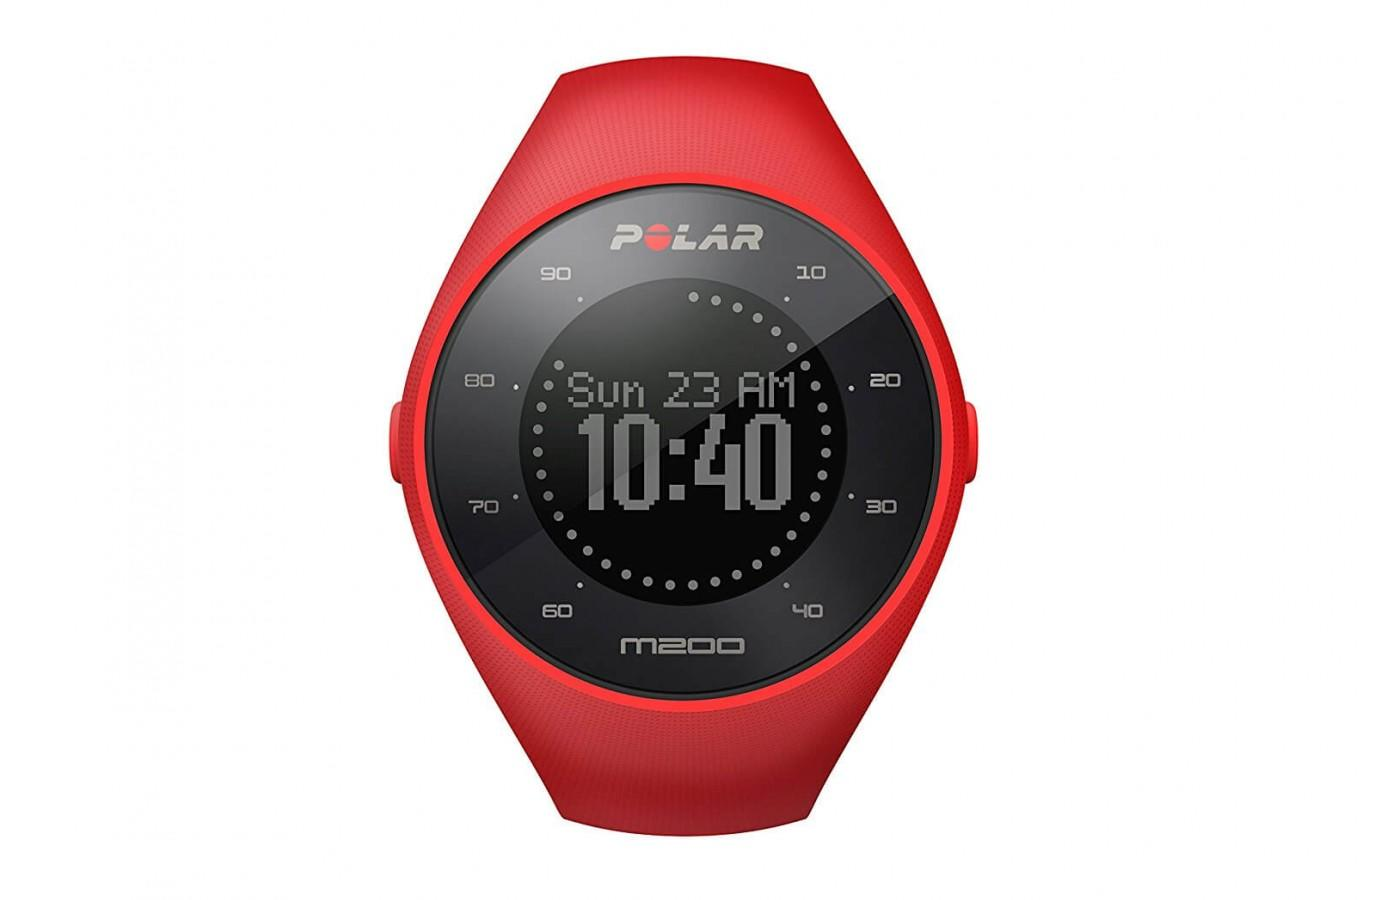 The Polar M200 comes in red and black